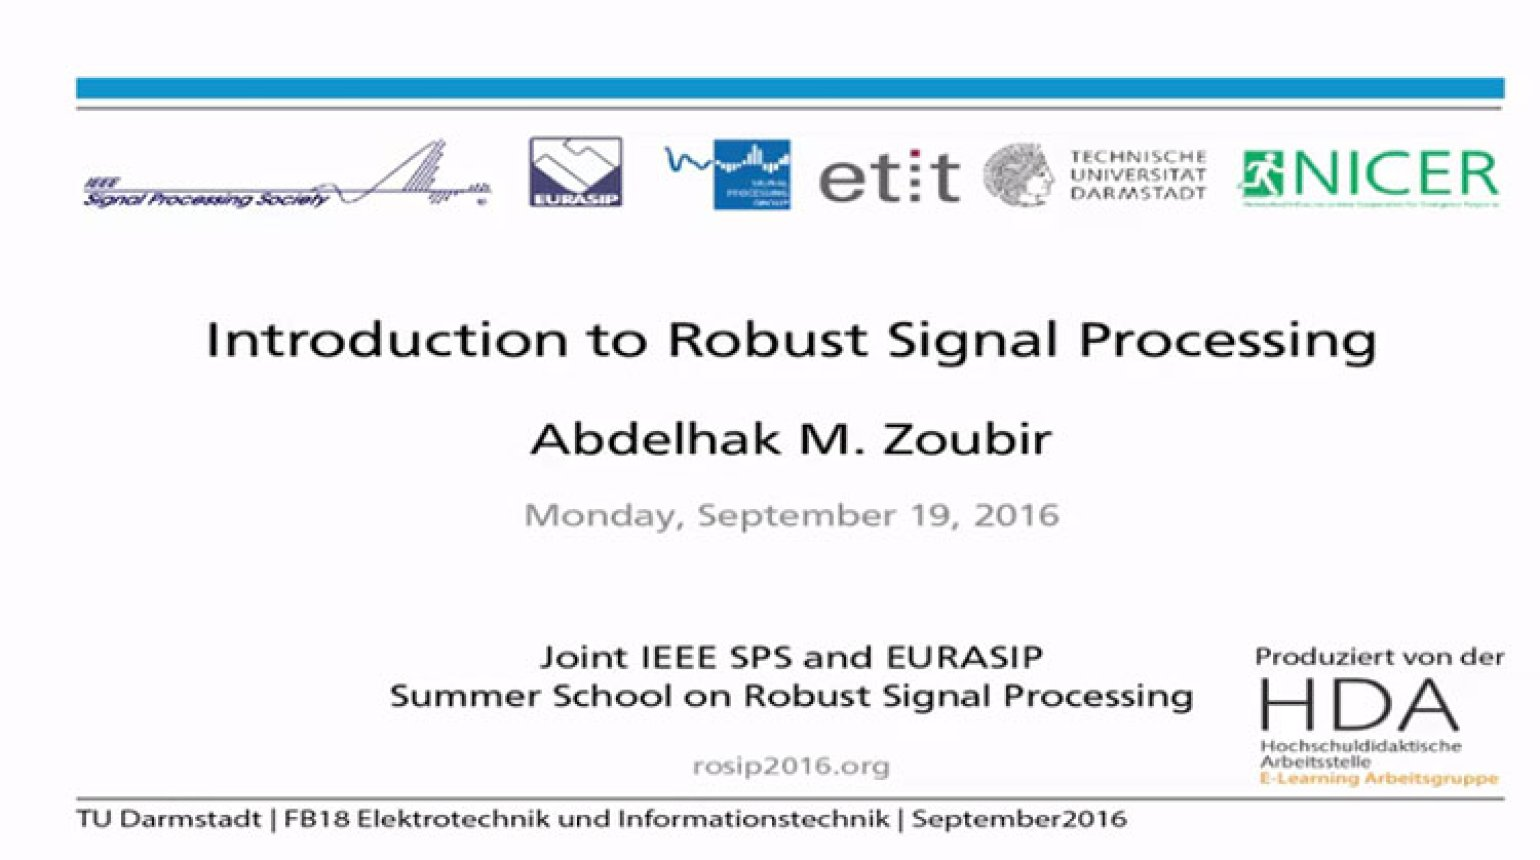 Introduction to Robust Signal Processing